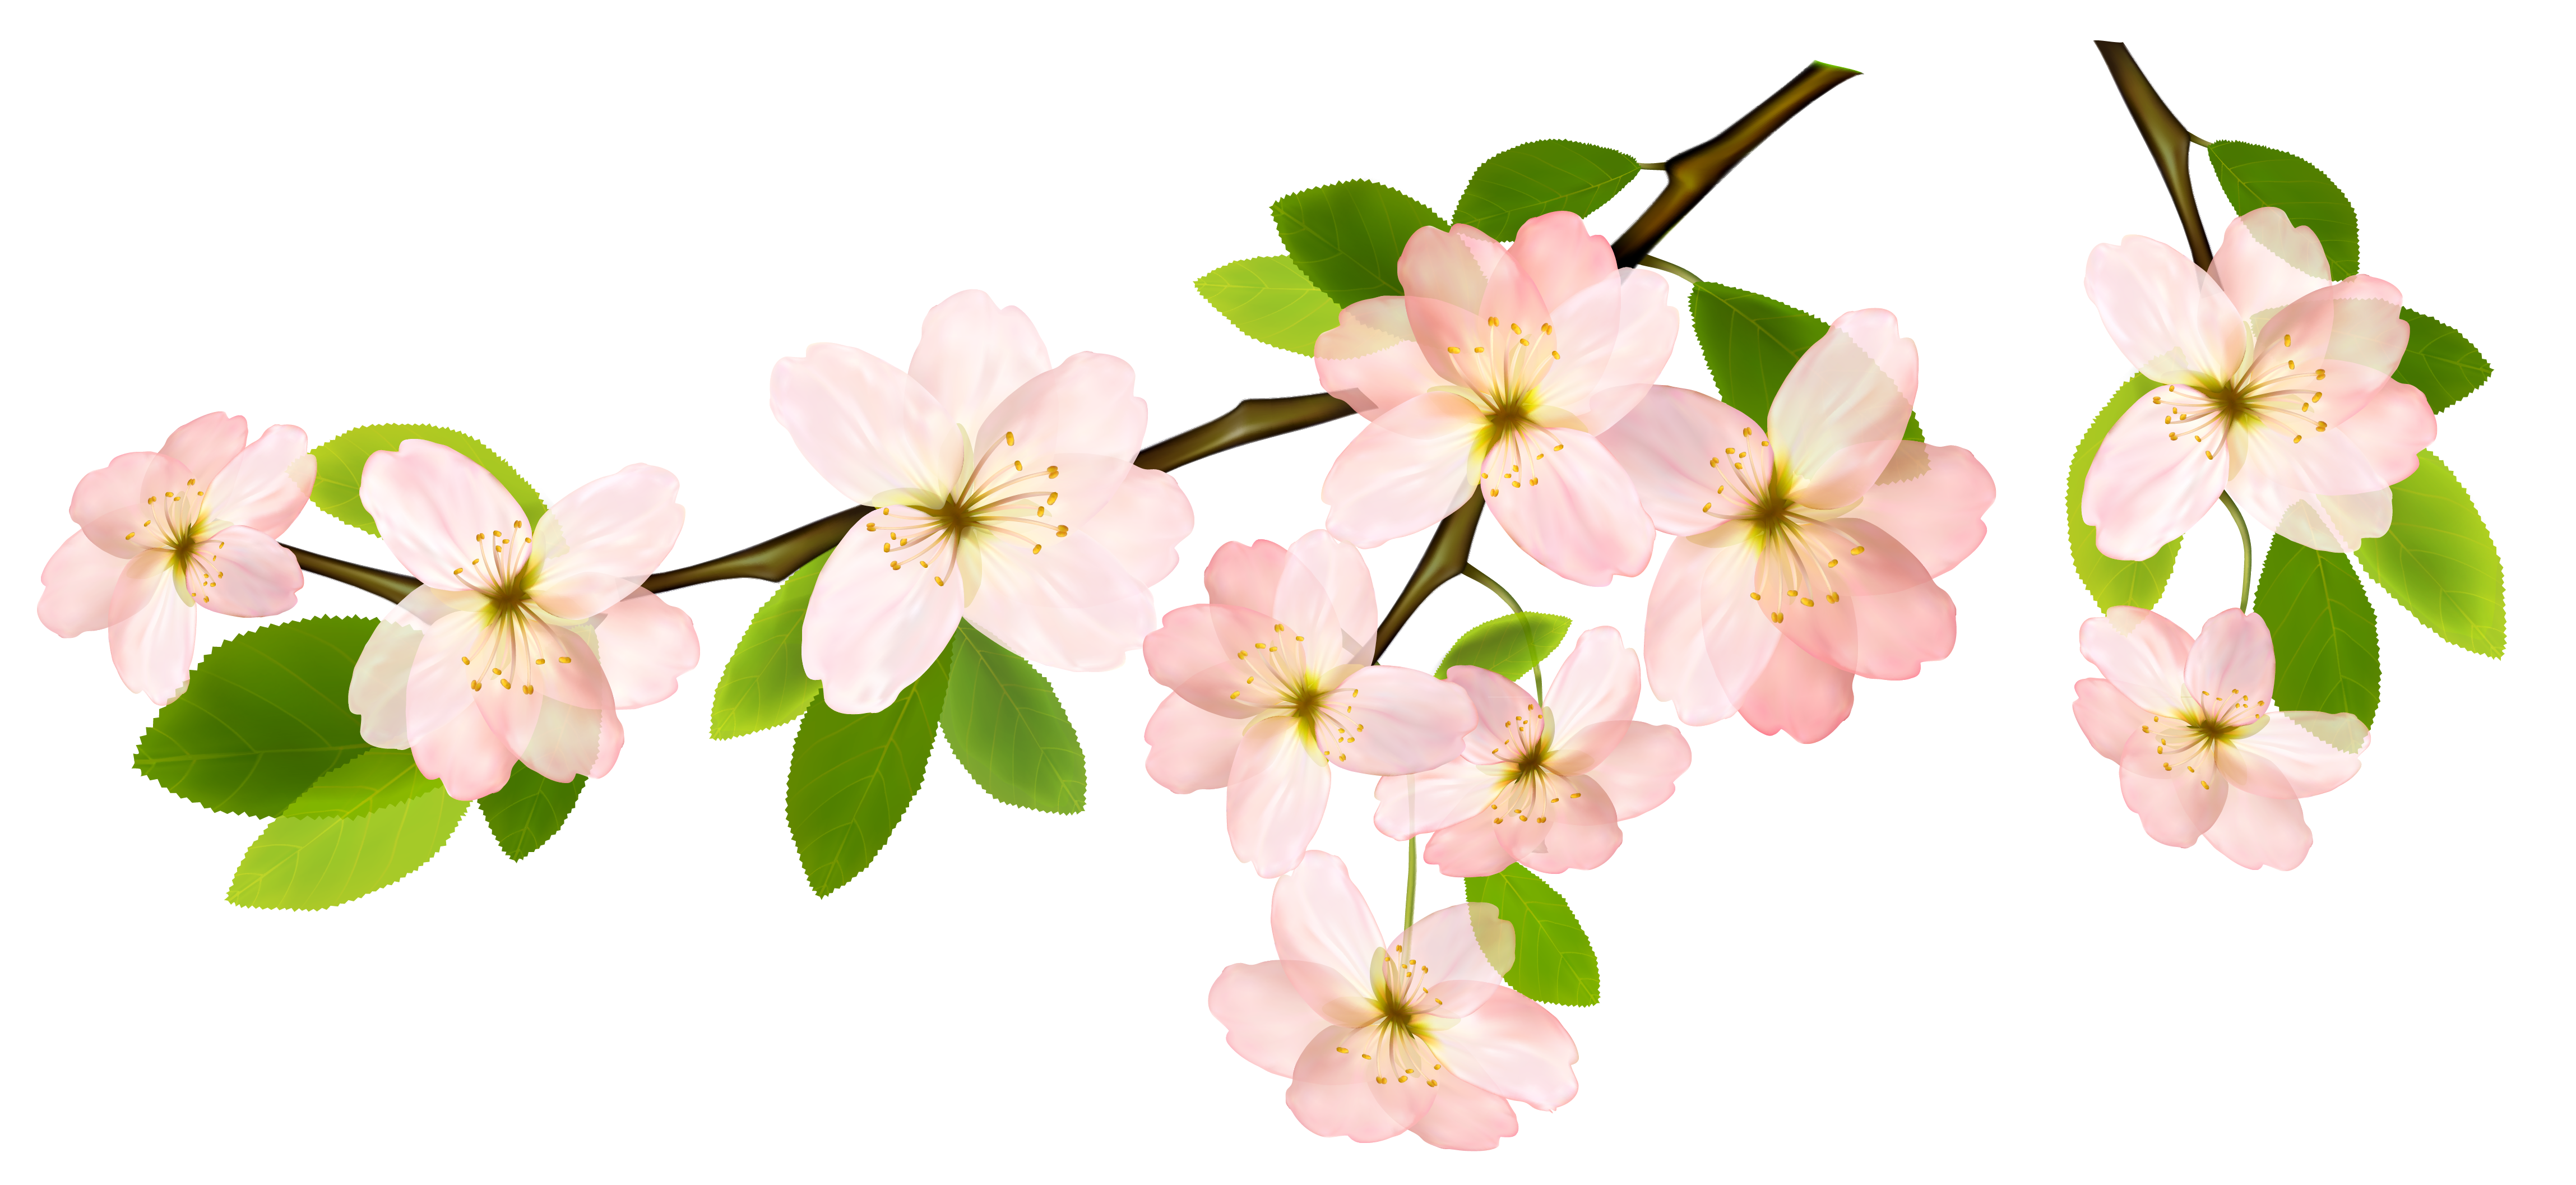 Branch png picture leaves. Garland clipart spring